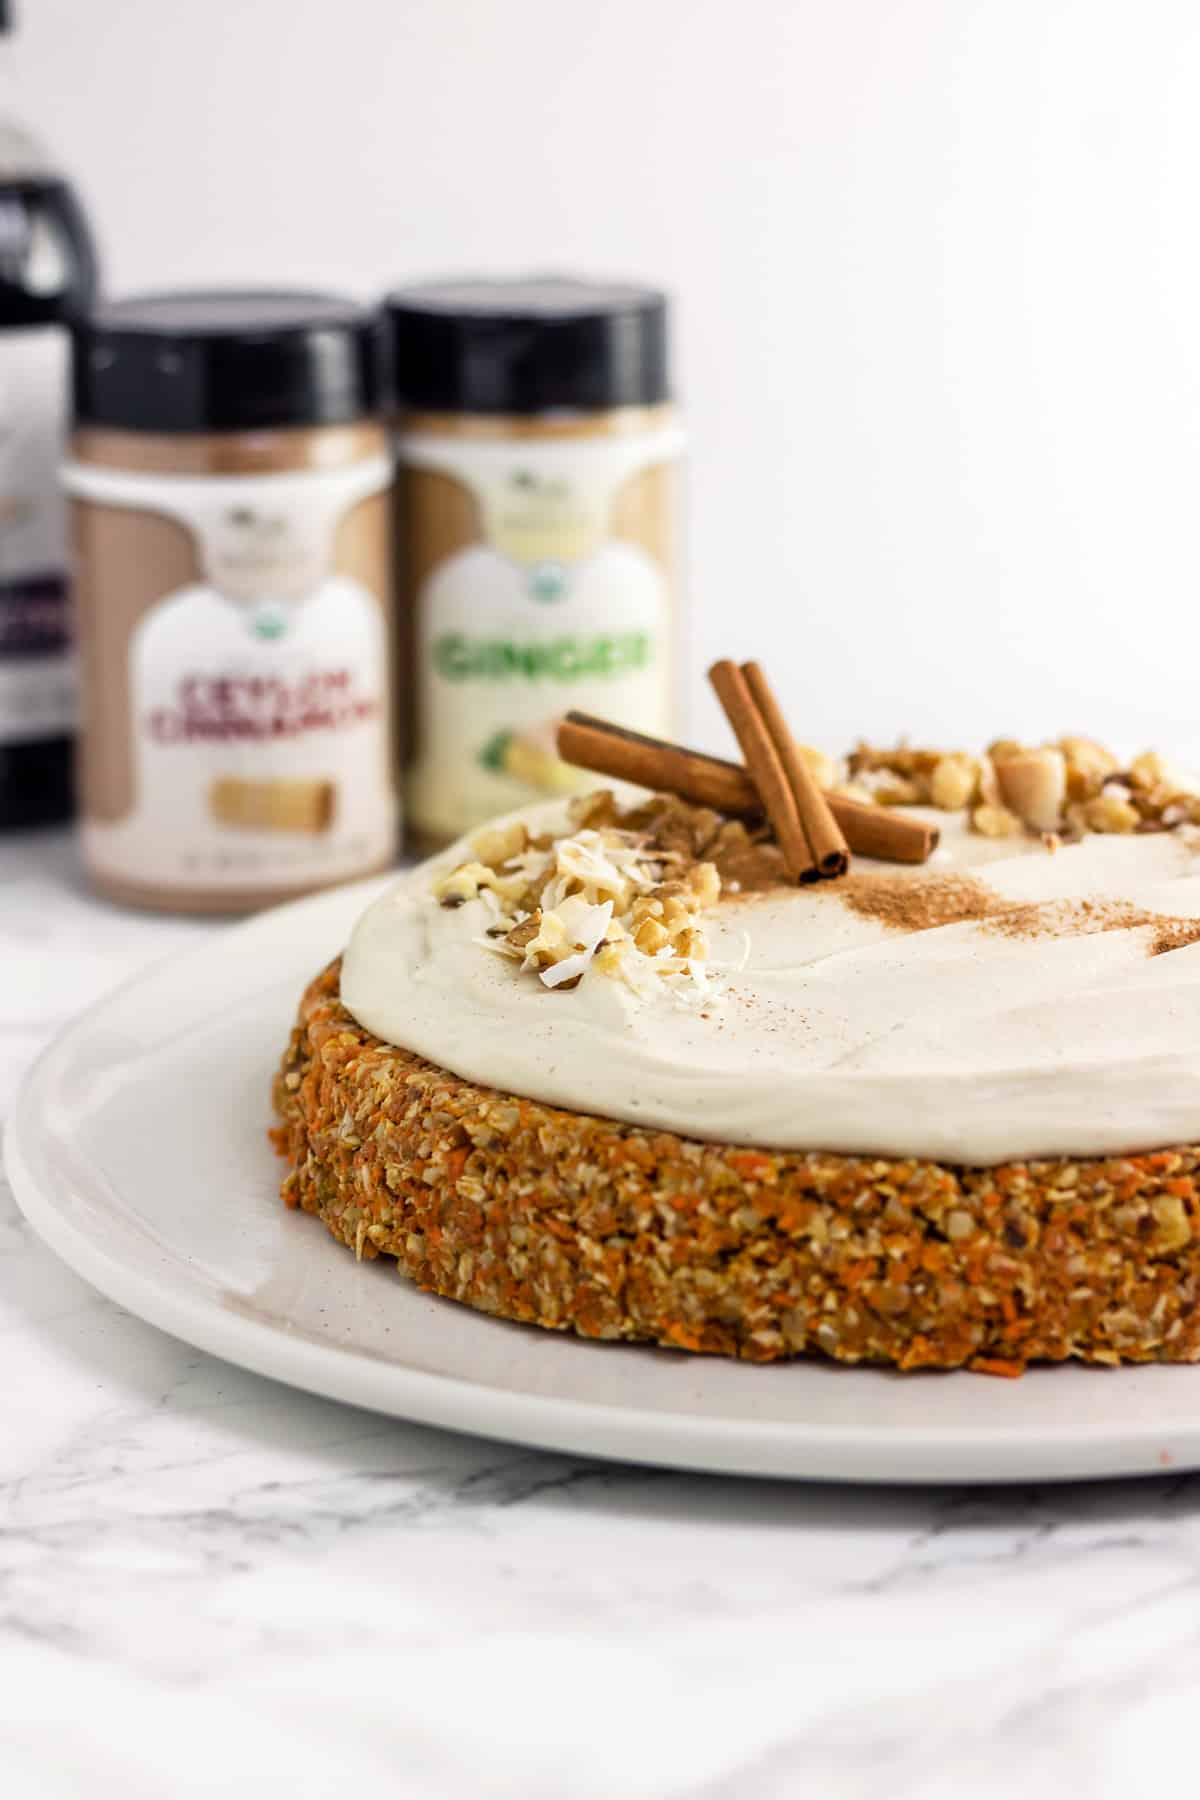 Not Too Sweet Cream Cheese Frosting For Carrot Cake